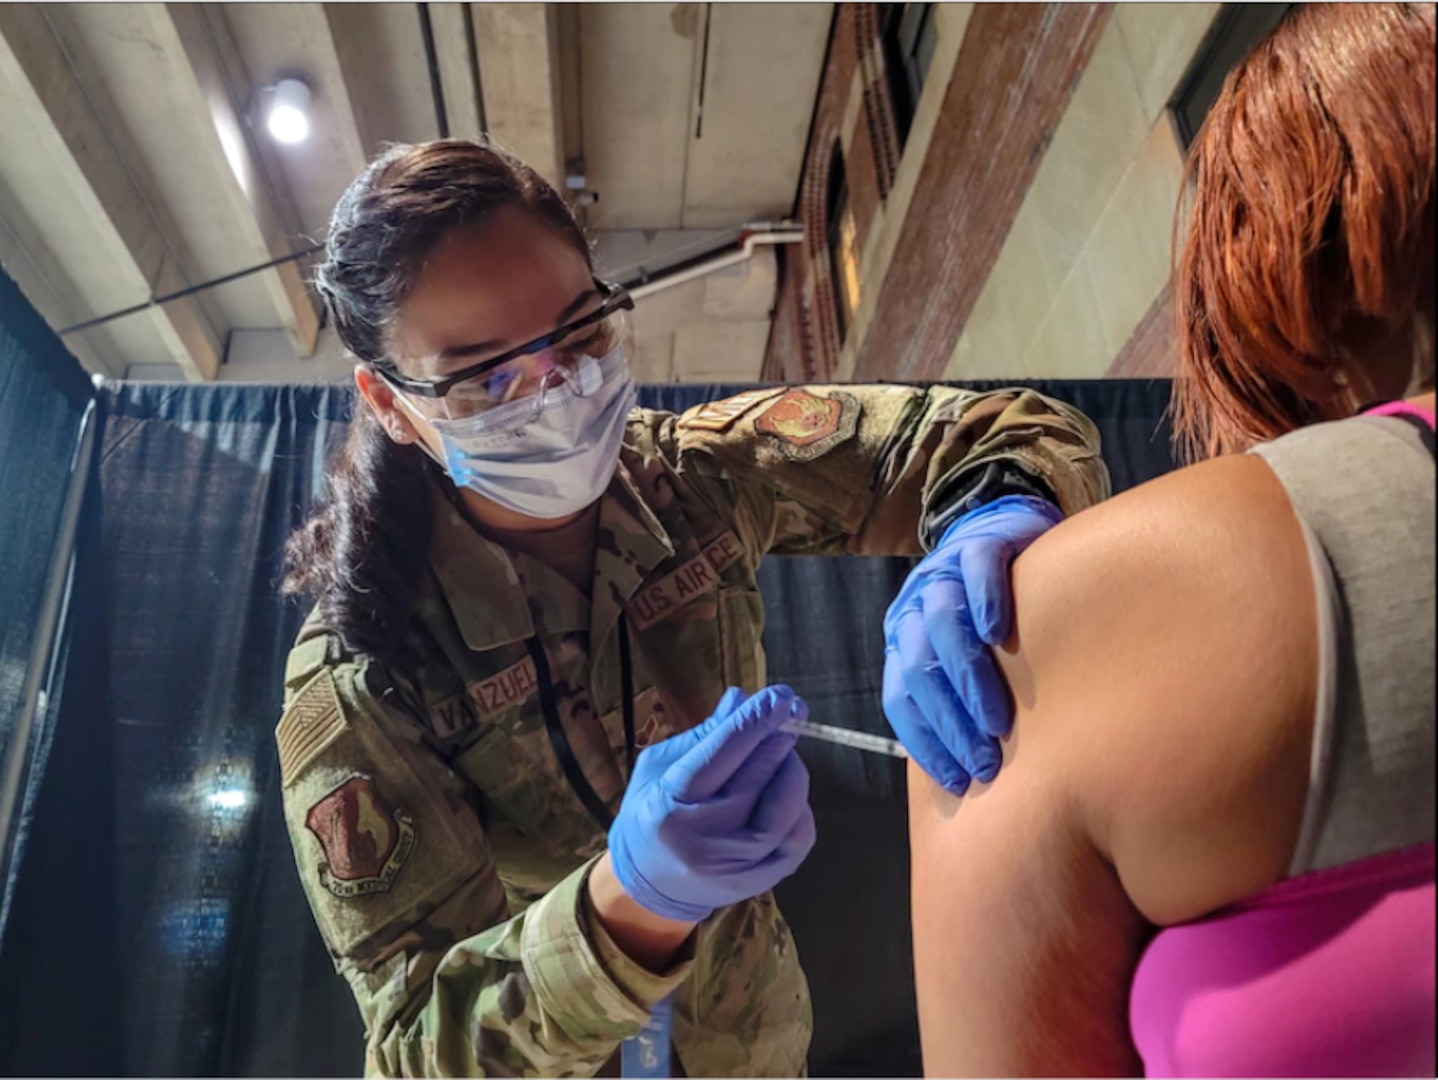 Airman 1st Class Pollyann Valenzuela, 75th Medical Group medic stationed at Hill Air Force Base, Utah, assigned to 1st Detachment, 64th Air Expeditionary Group, administers a COVID-19 vaccination to a local community member at the state-run, federally-supported Ford Field COVID-19 Community Vaccination Center in Detroit, Mich., March 26, 2021.